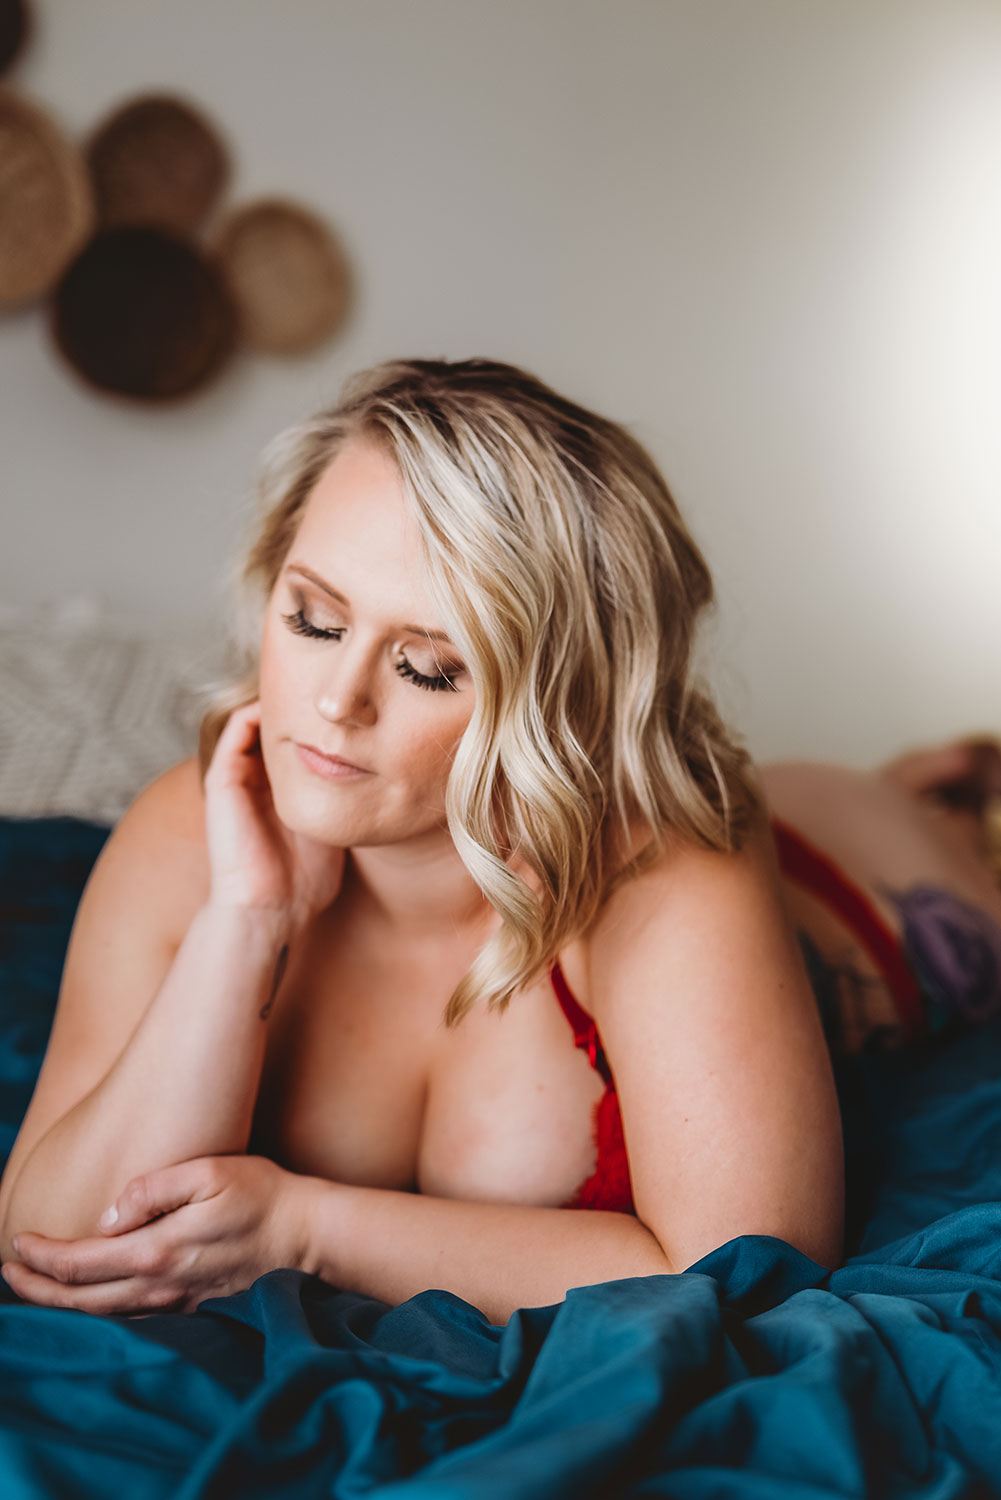 Chattanooga Boudoir Studio for Rent | Boudoir Photography by Brittany Burris